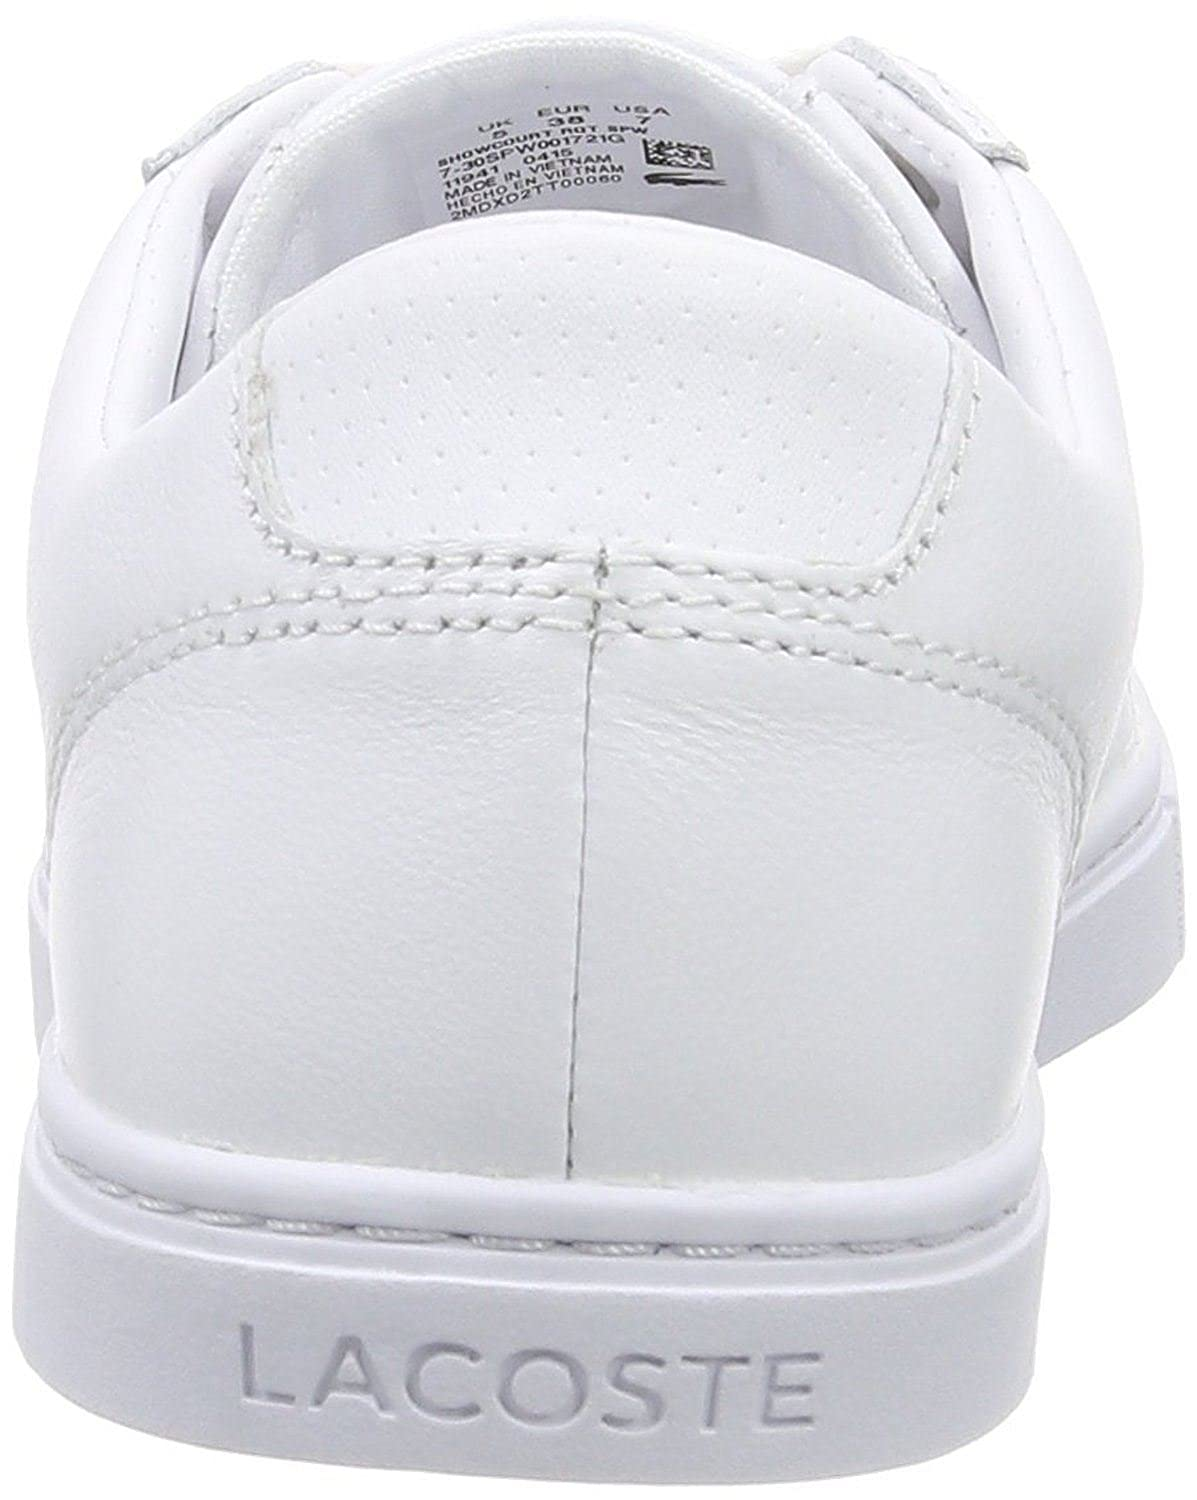 df77a8dbfc4bf Lacoste Snowcourt RQT White Leather Womens Trainers Shoes  Amazon.co.uk   Shoes   Bags